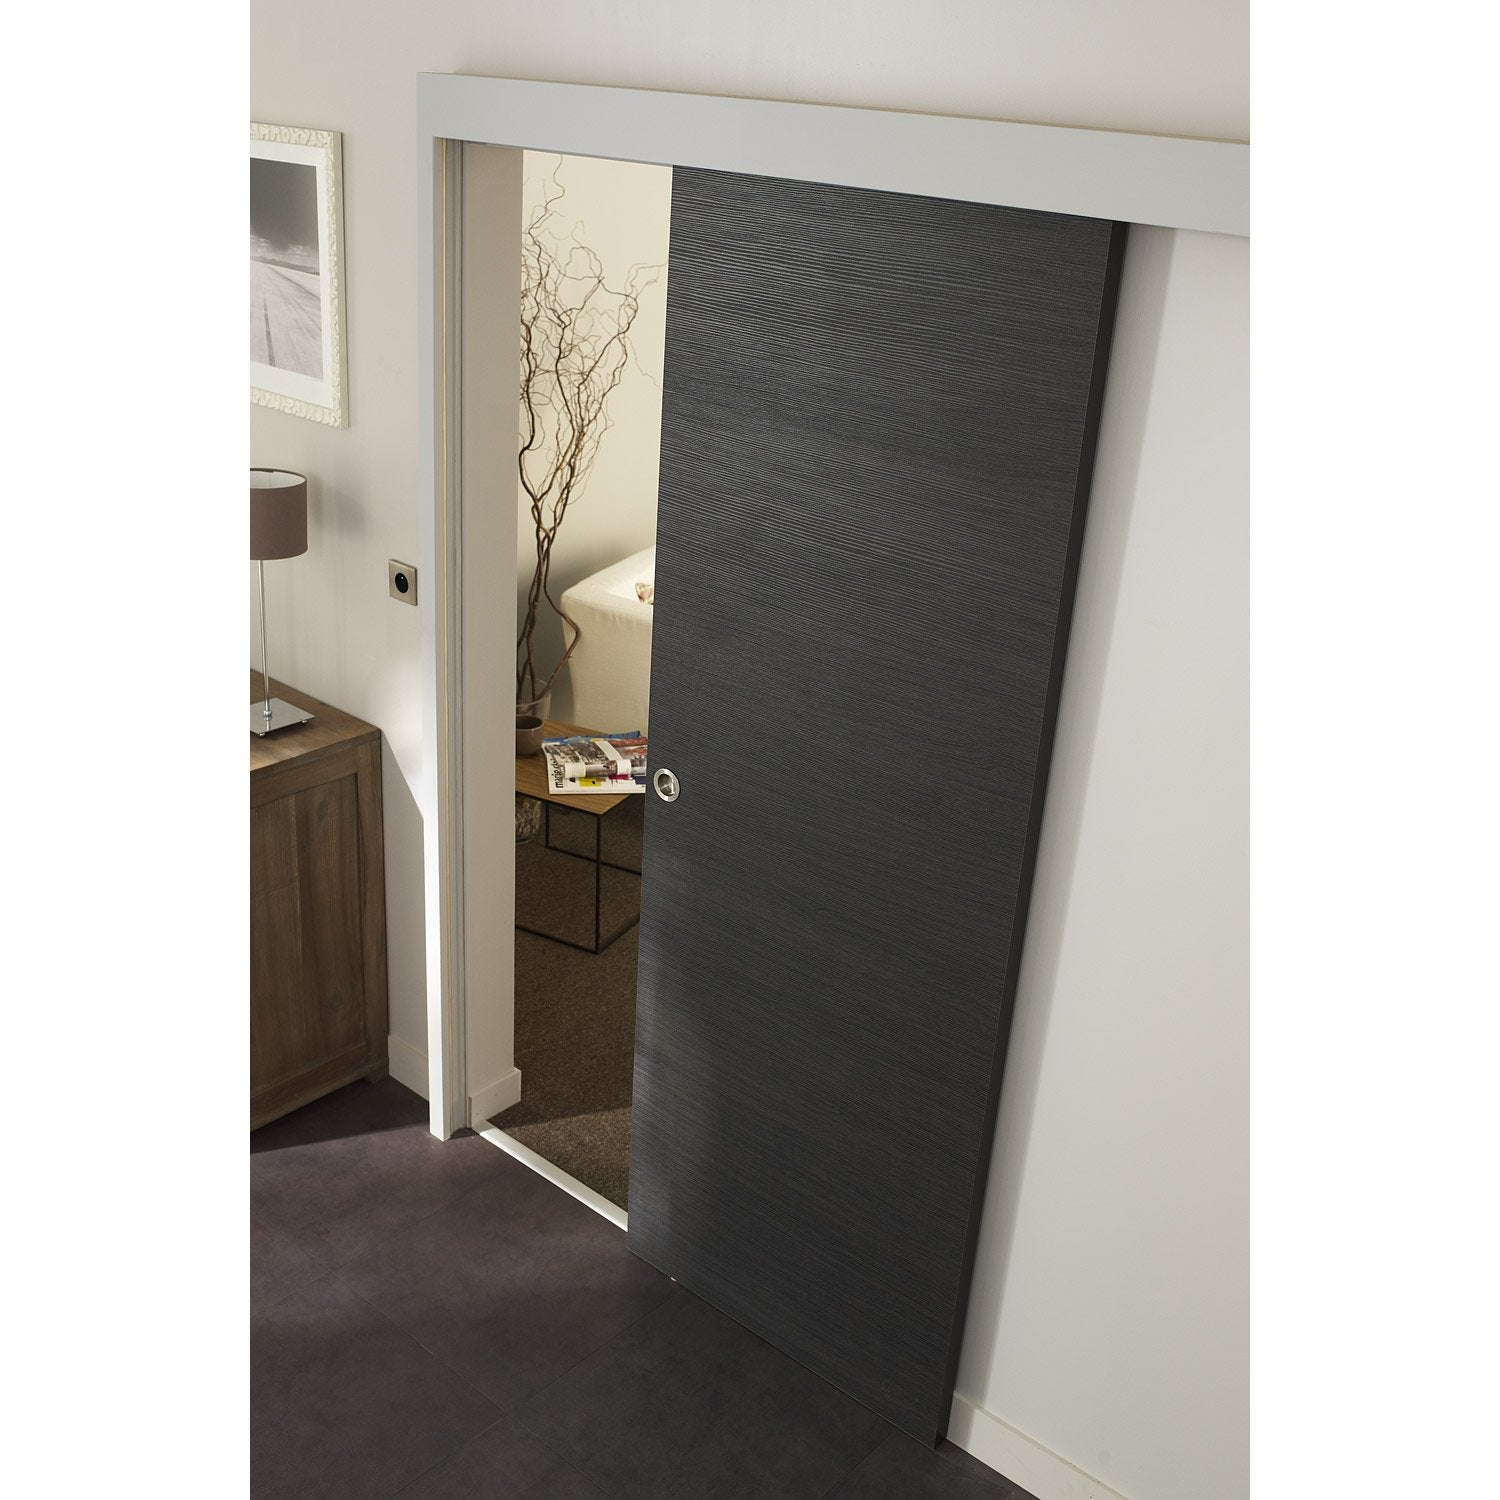 Ensemble porte coulissante londres mdf rev tu avec le rail jazz 2 en aluminium leroy merlin for Peinture porte interieure leroy merlin